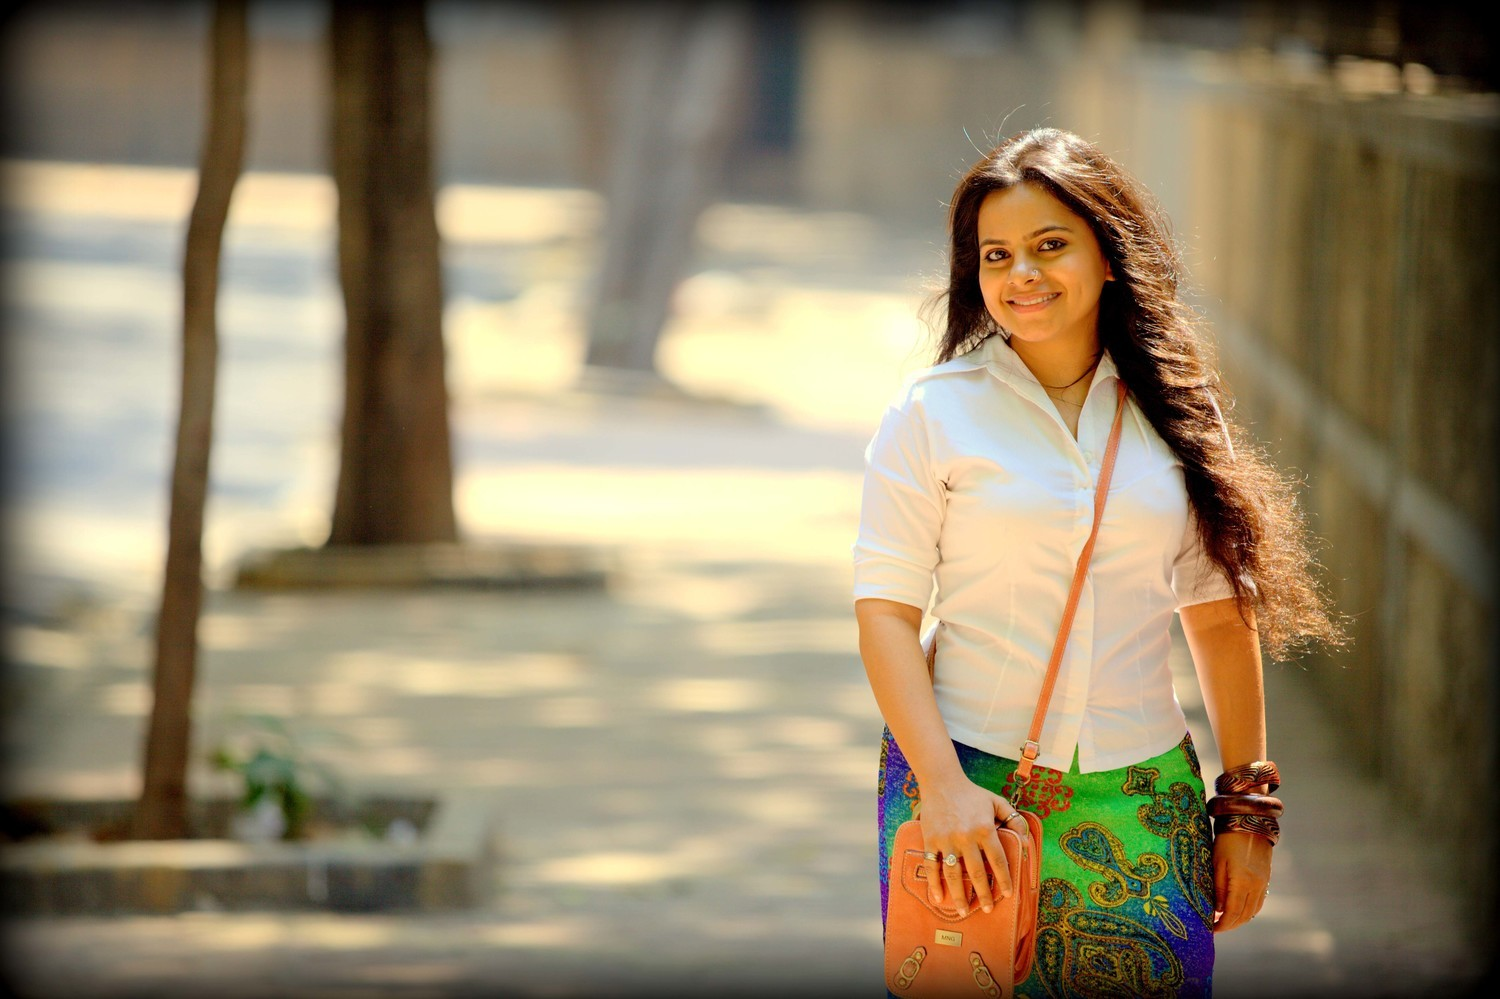 BWW Feature: POPULAR THEATRE ACTOR Amruta Sant Makes Hollywood Debut